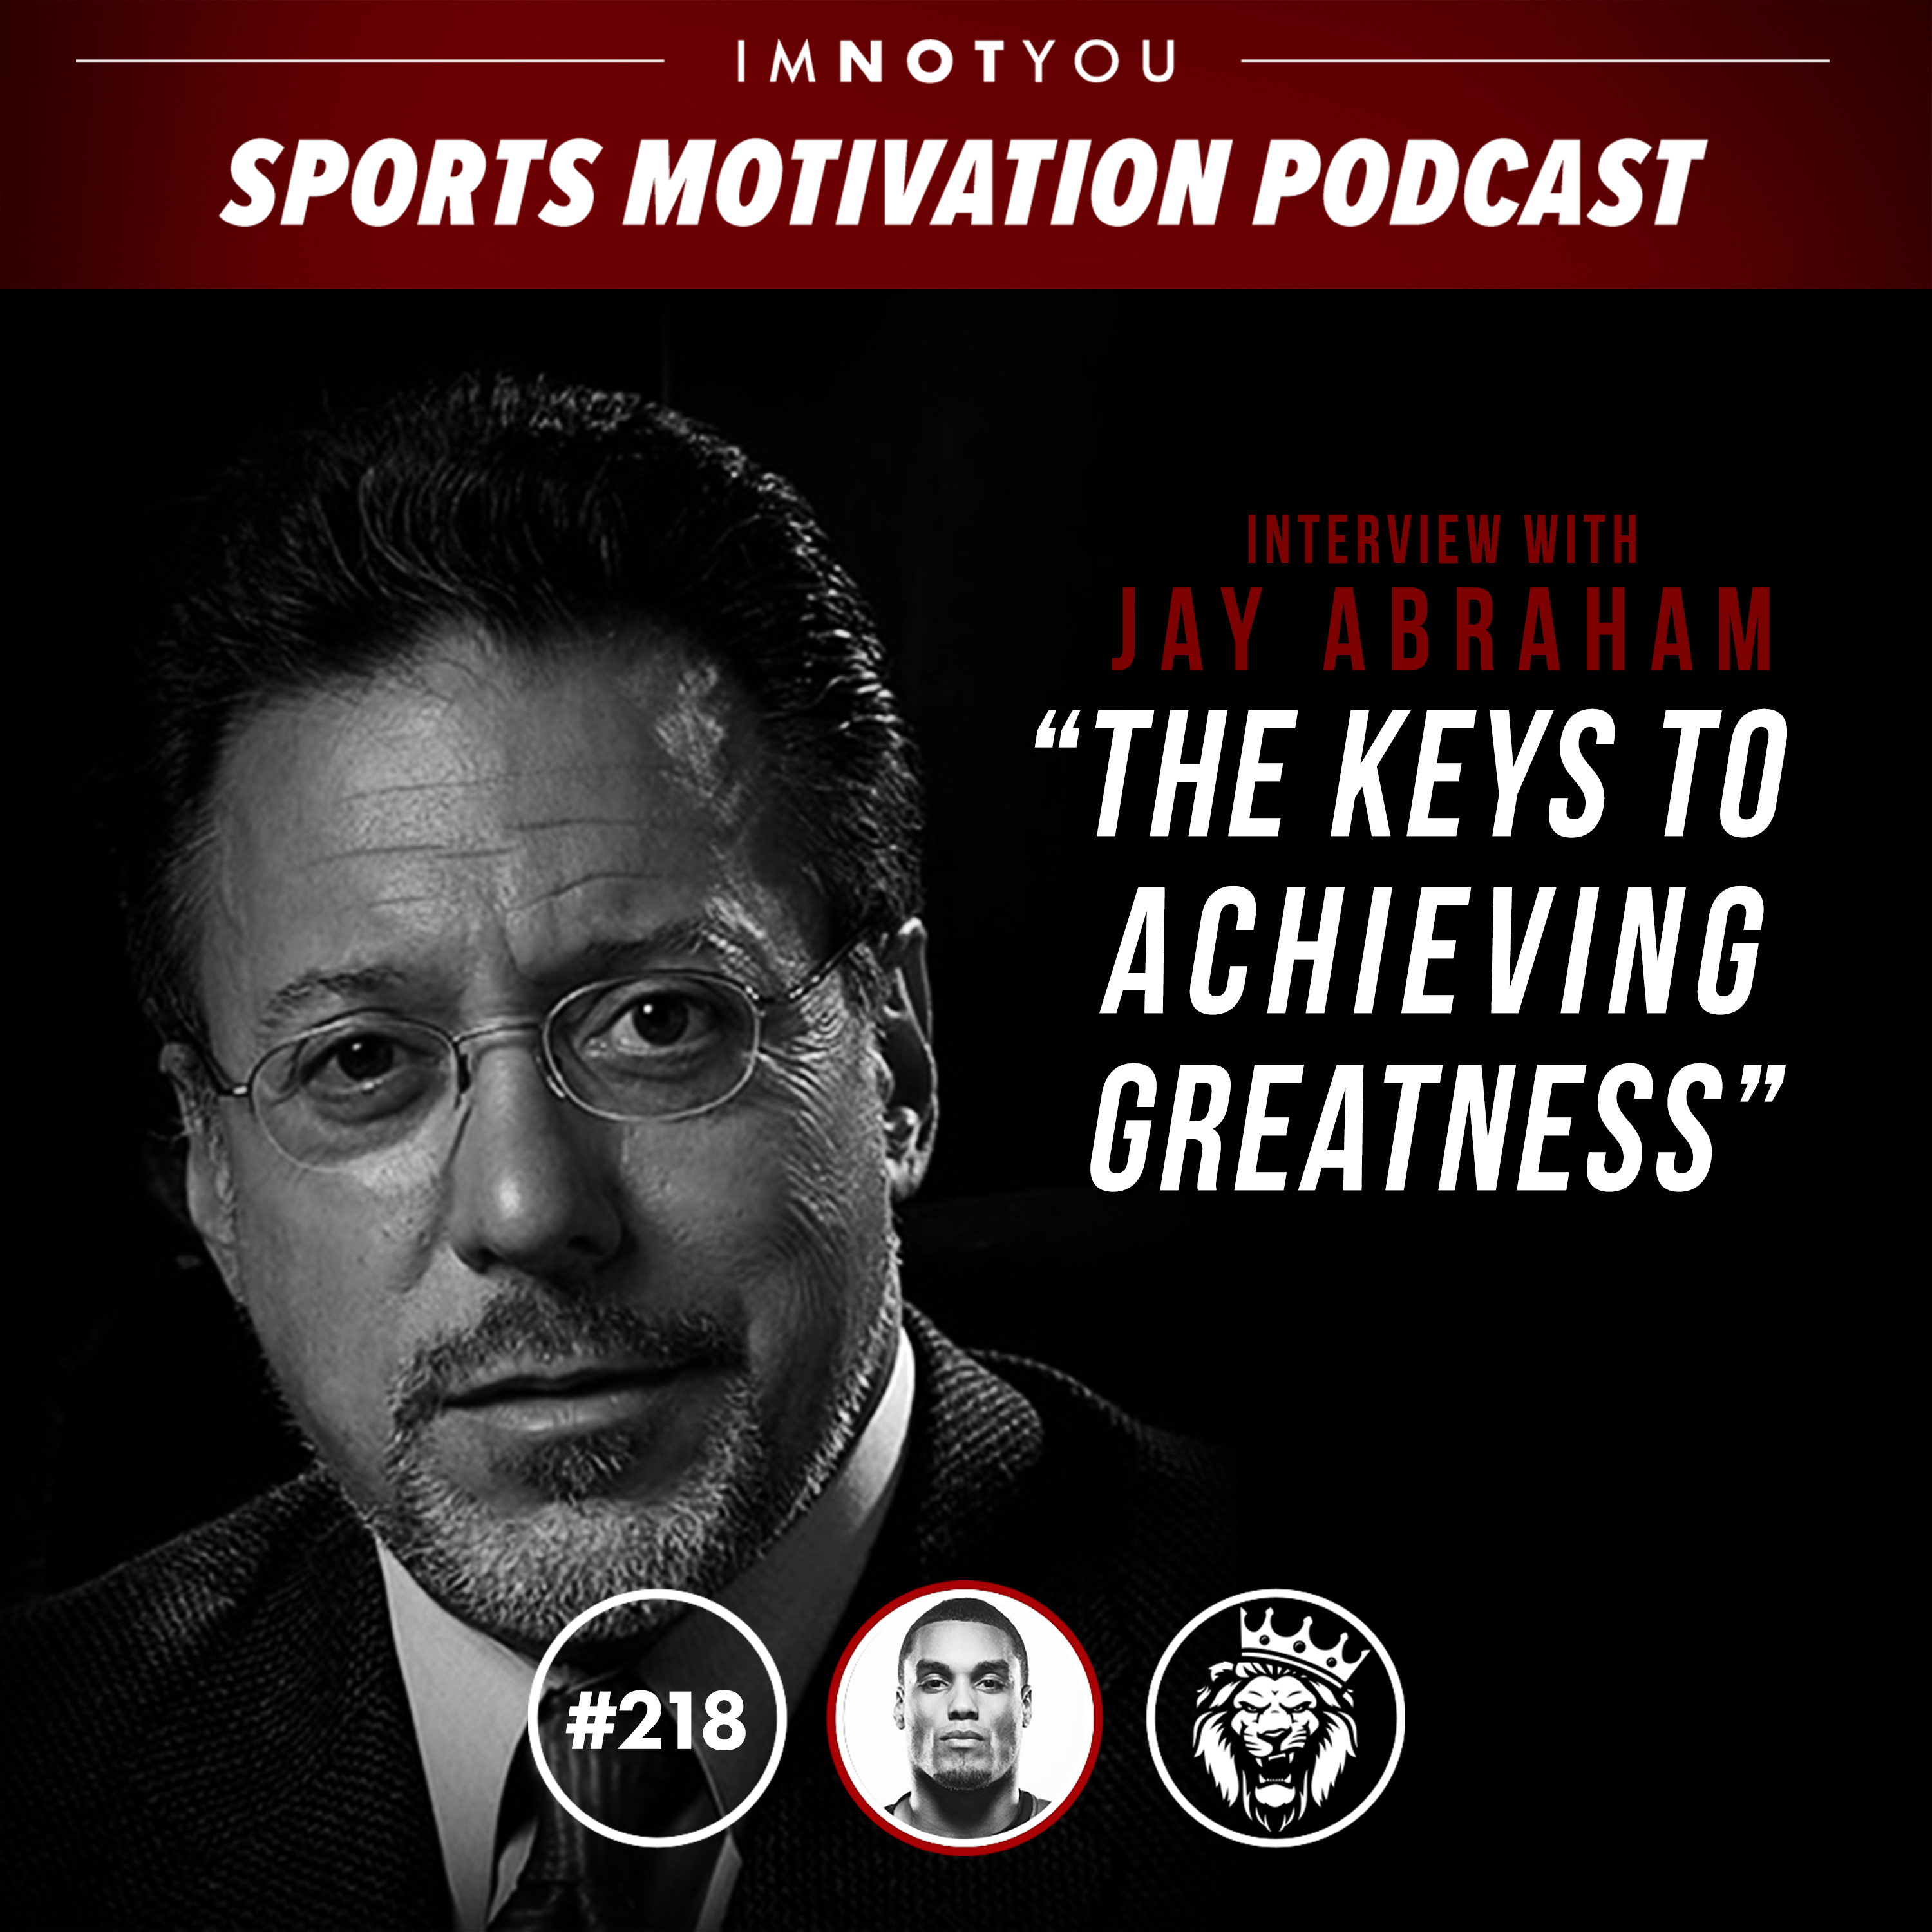 The keys to achieving greatness: Interview with Jay Abraham